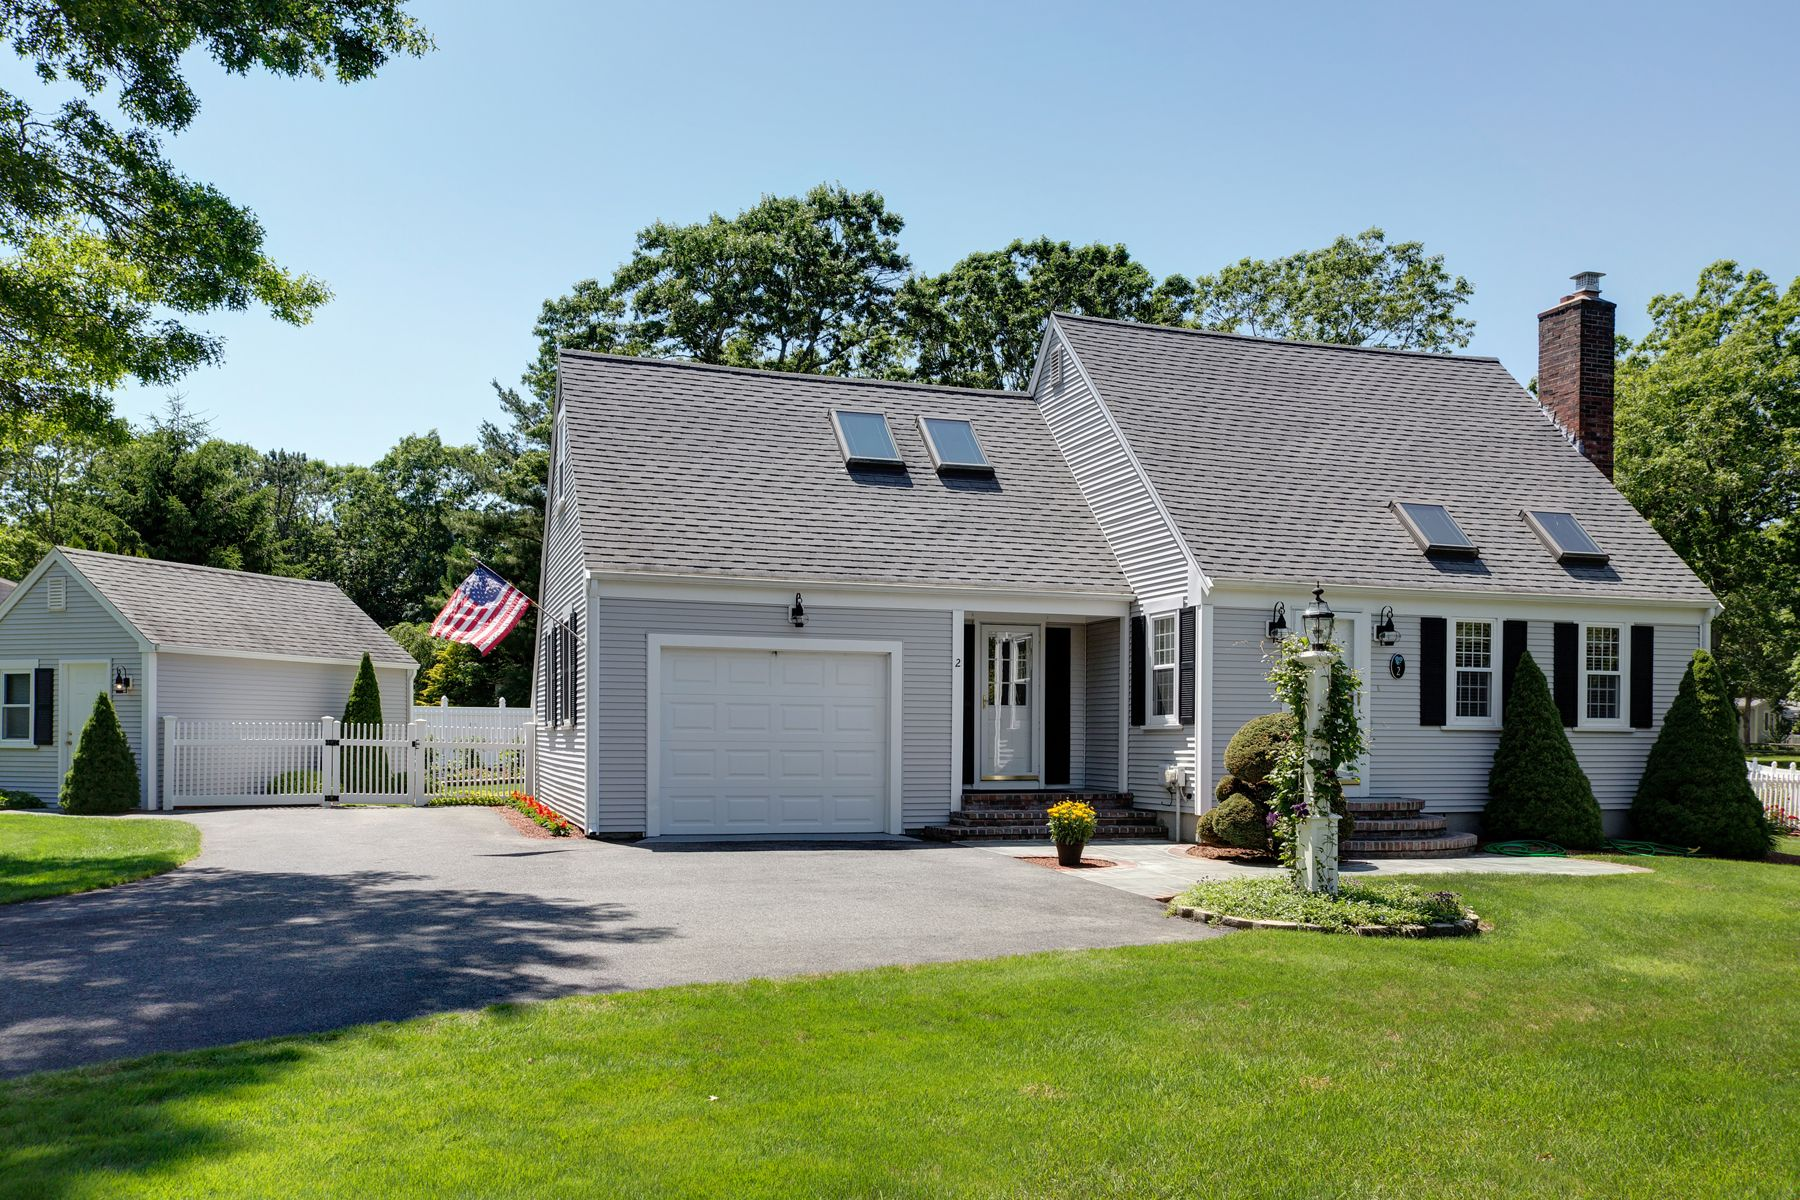 Single Family Homes for Active at Exquisite Sunny Cape 2 Tabor Road Forestdale, Massachusetts 02644 United States